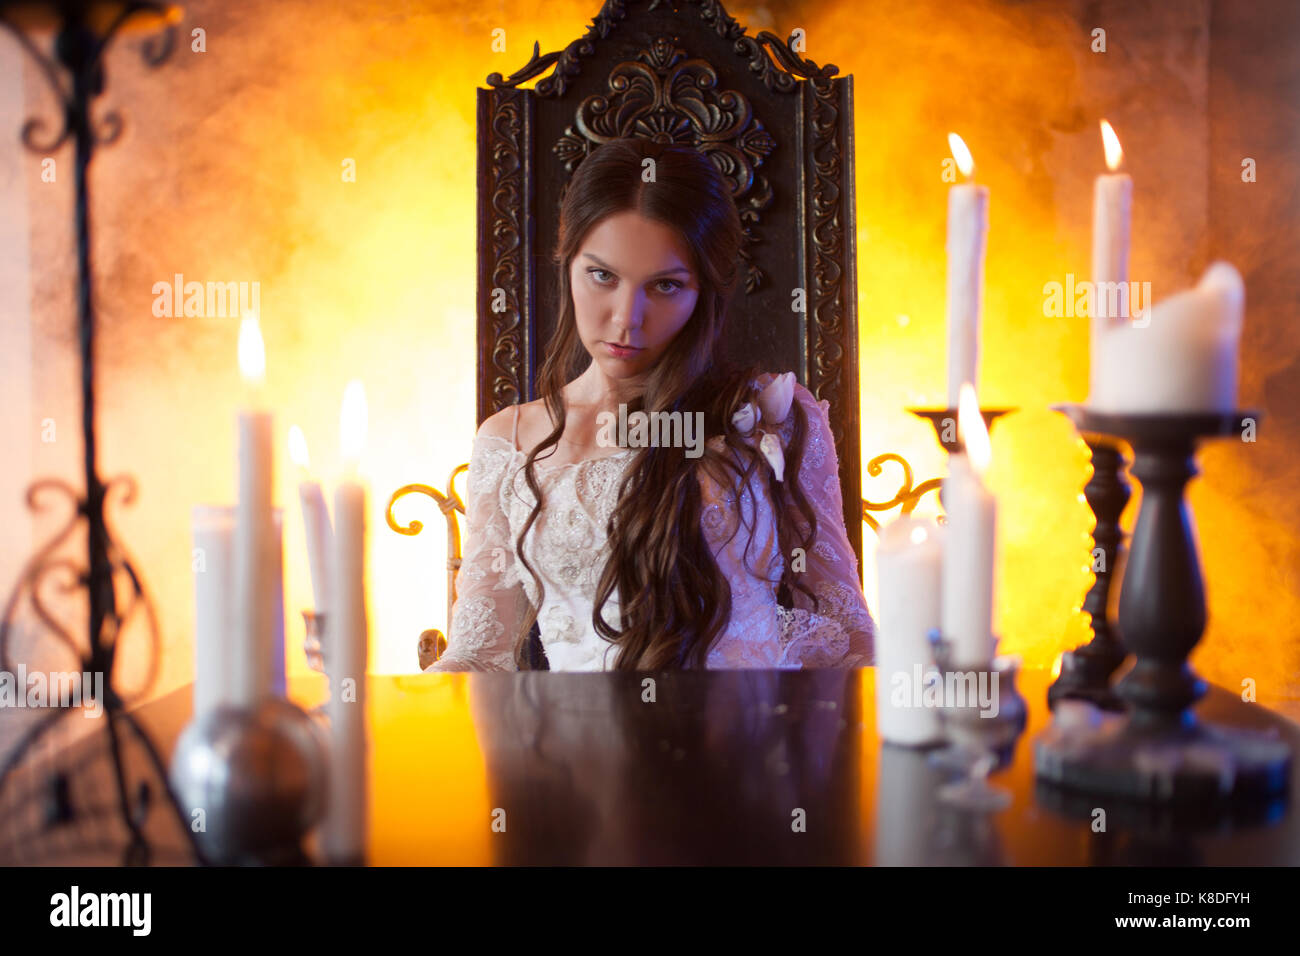 Gothic Style Fireplace Stock Photos amp Gothic Style  : beautiful young woman in vintage dress at a table in the mystic manor K8DFYH from www.alamy.com size 1300 x 956 jpeg 143kB